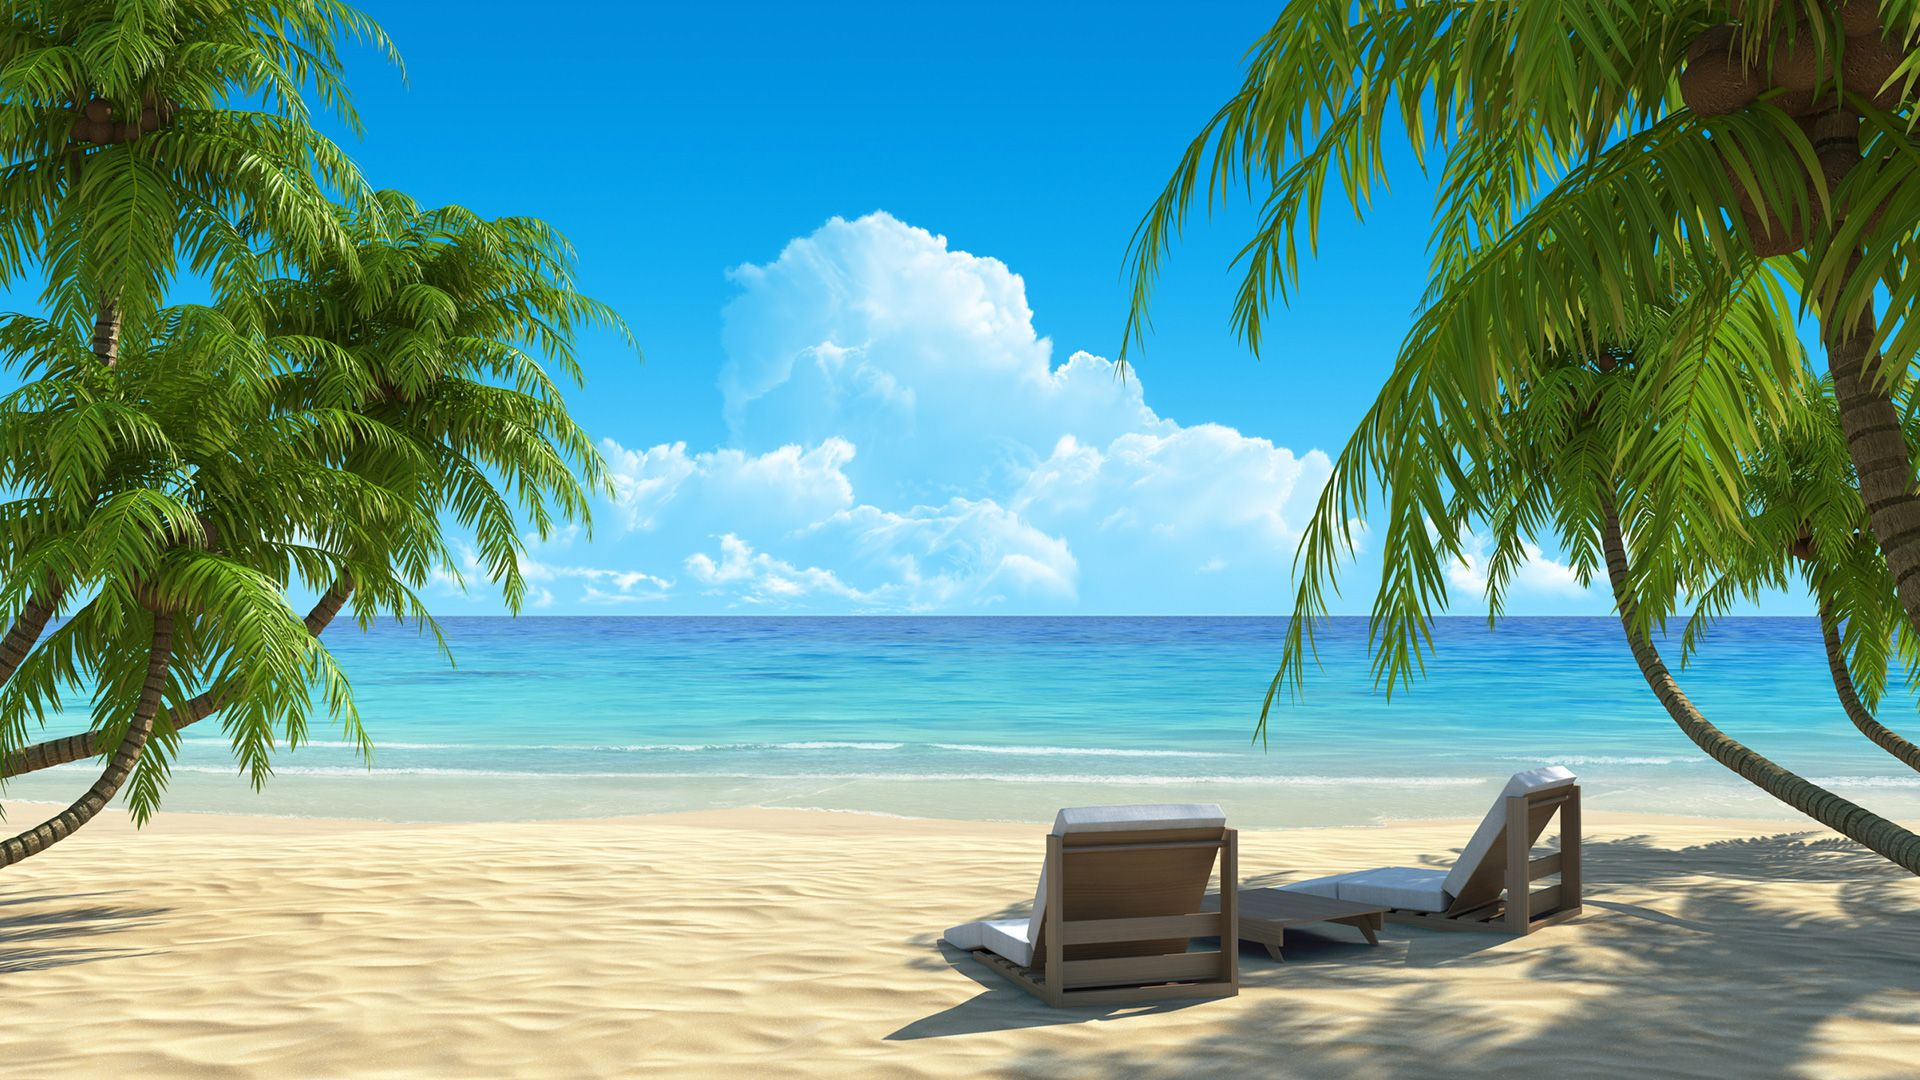 Hd Tropical Island Beach Paradise Wallpapers And Backgrounds: Paradise Dream Beach - 1920x1080 - 16:9